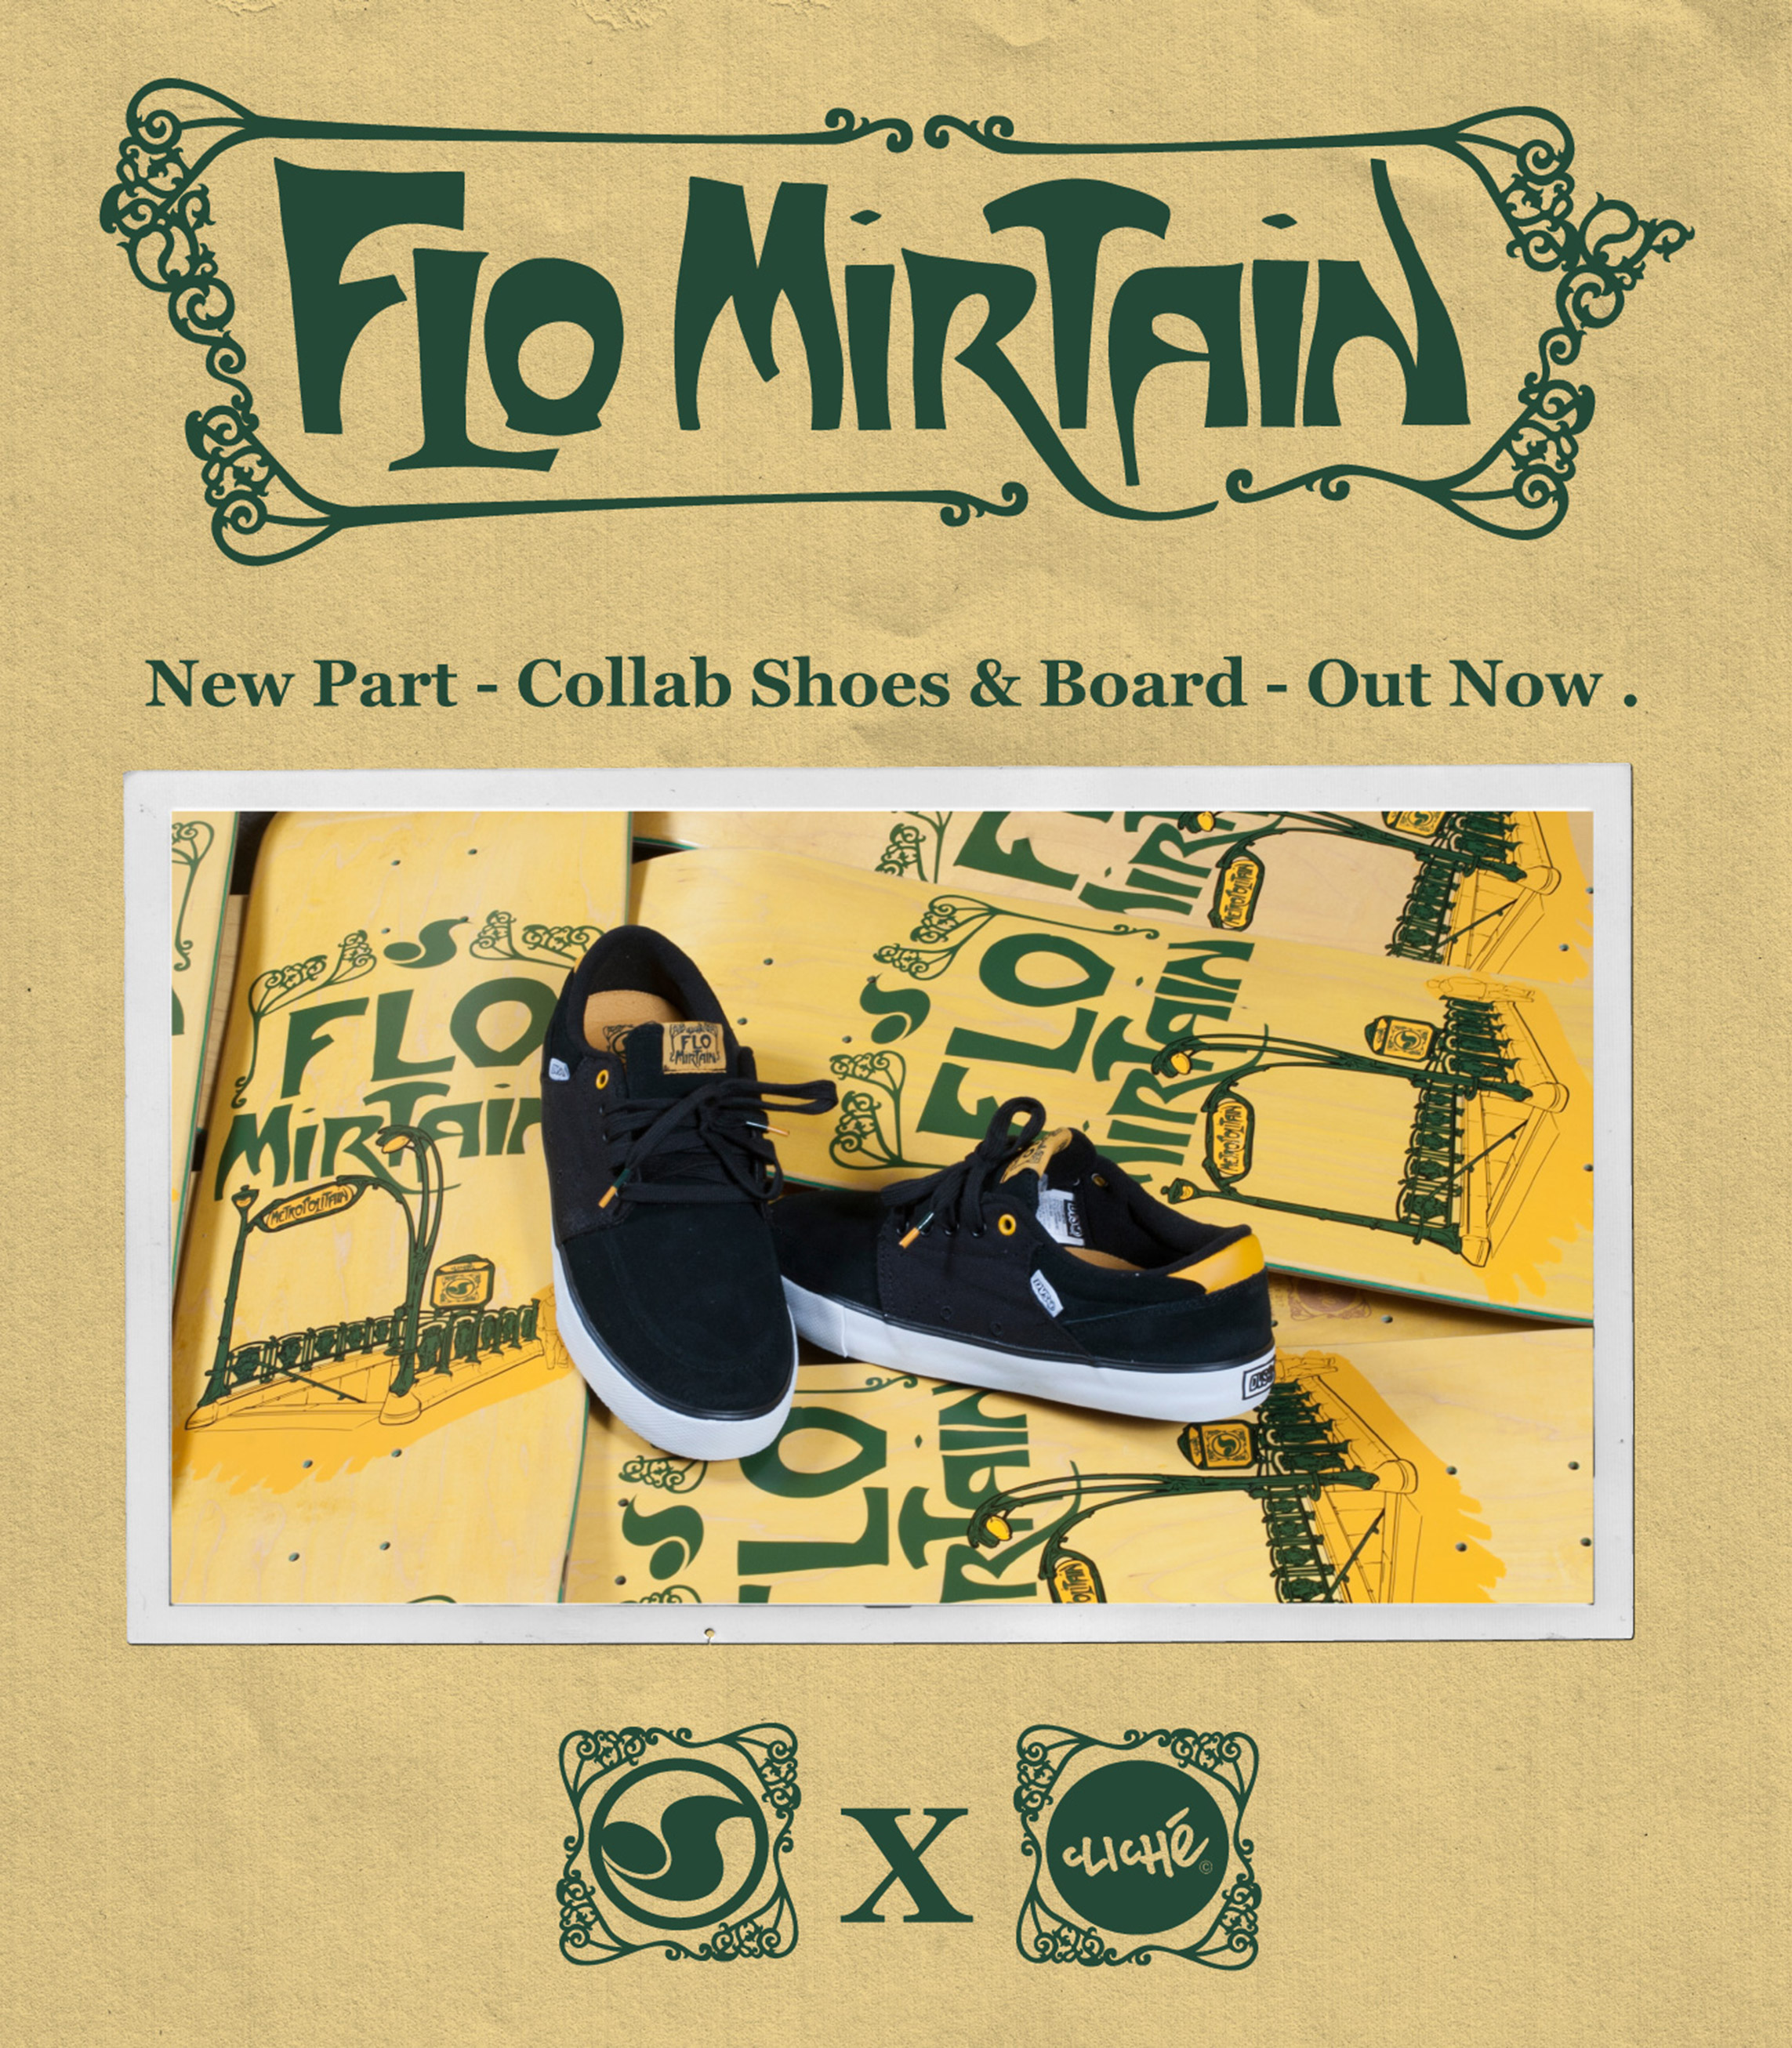 DVS x Cliché_Flo Mirtain_new video part.